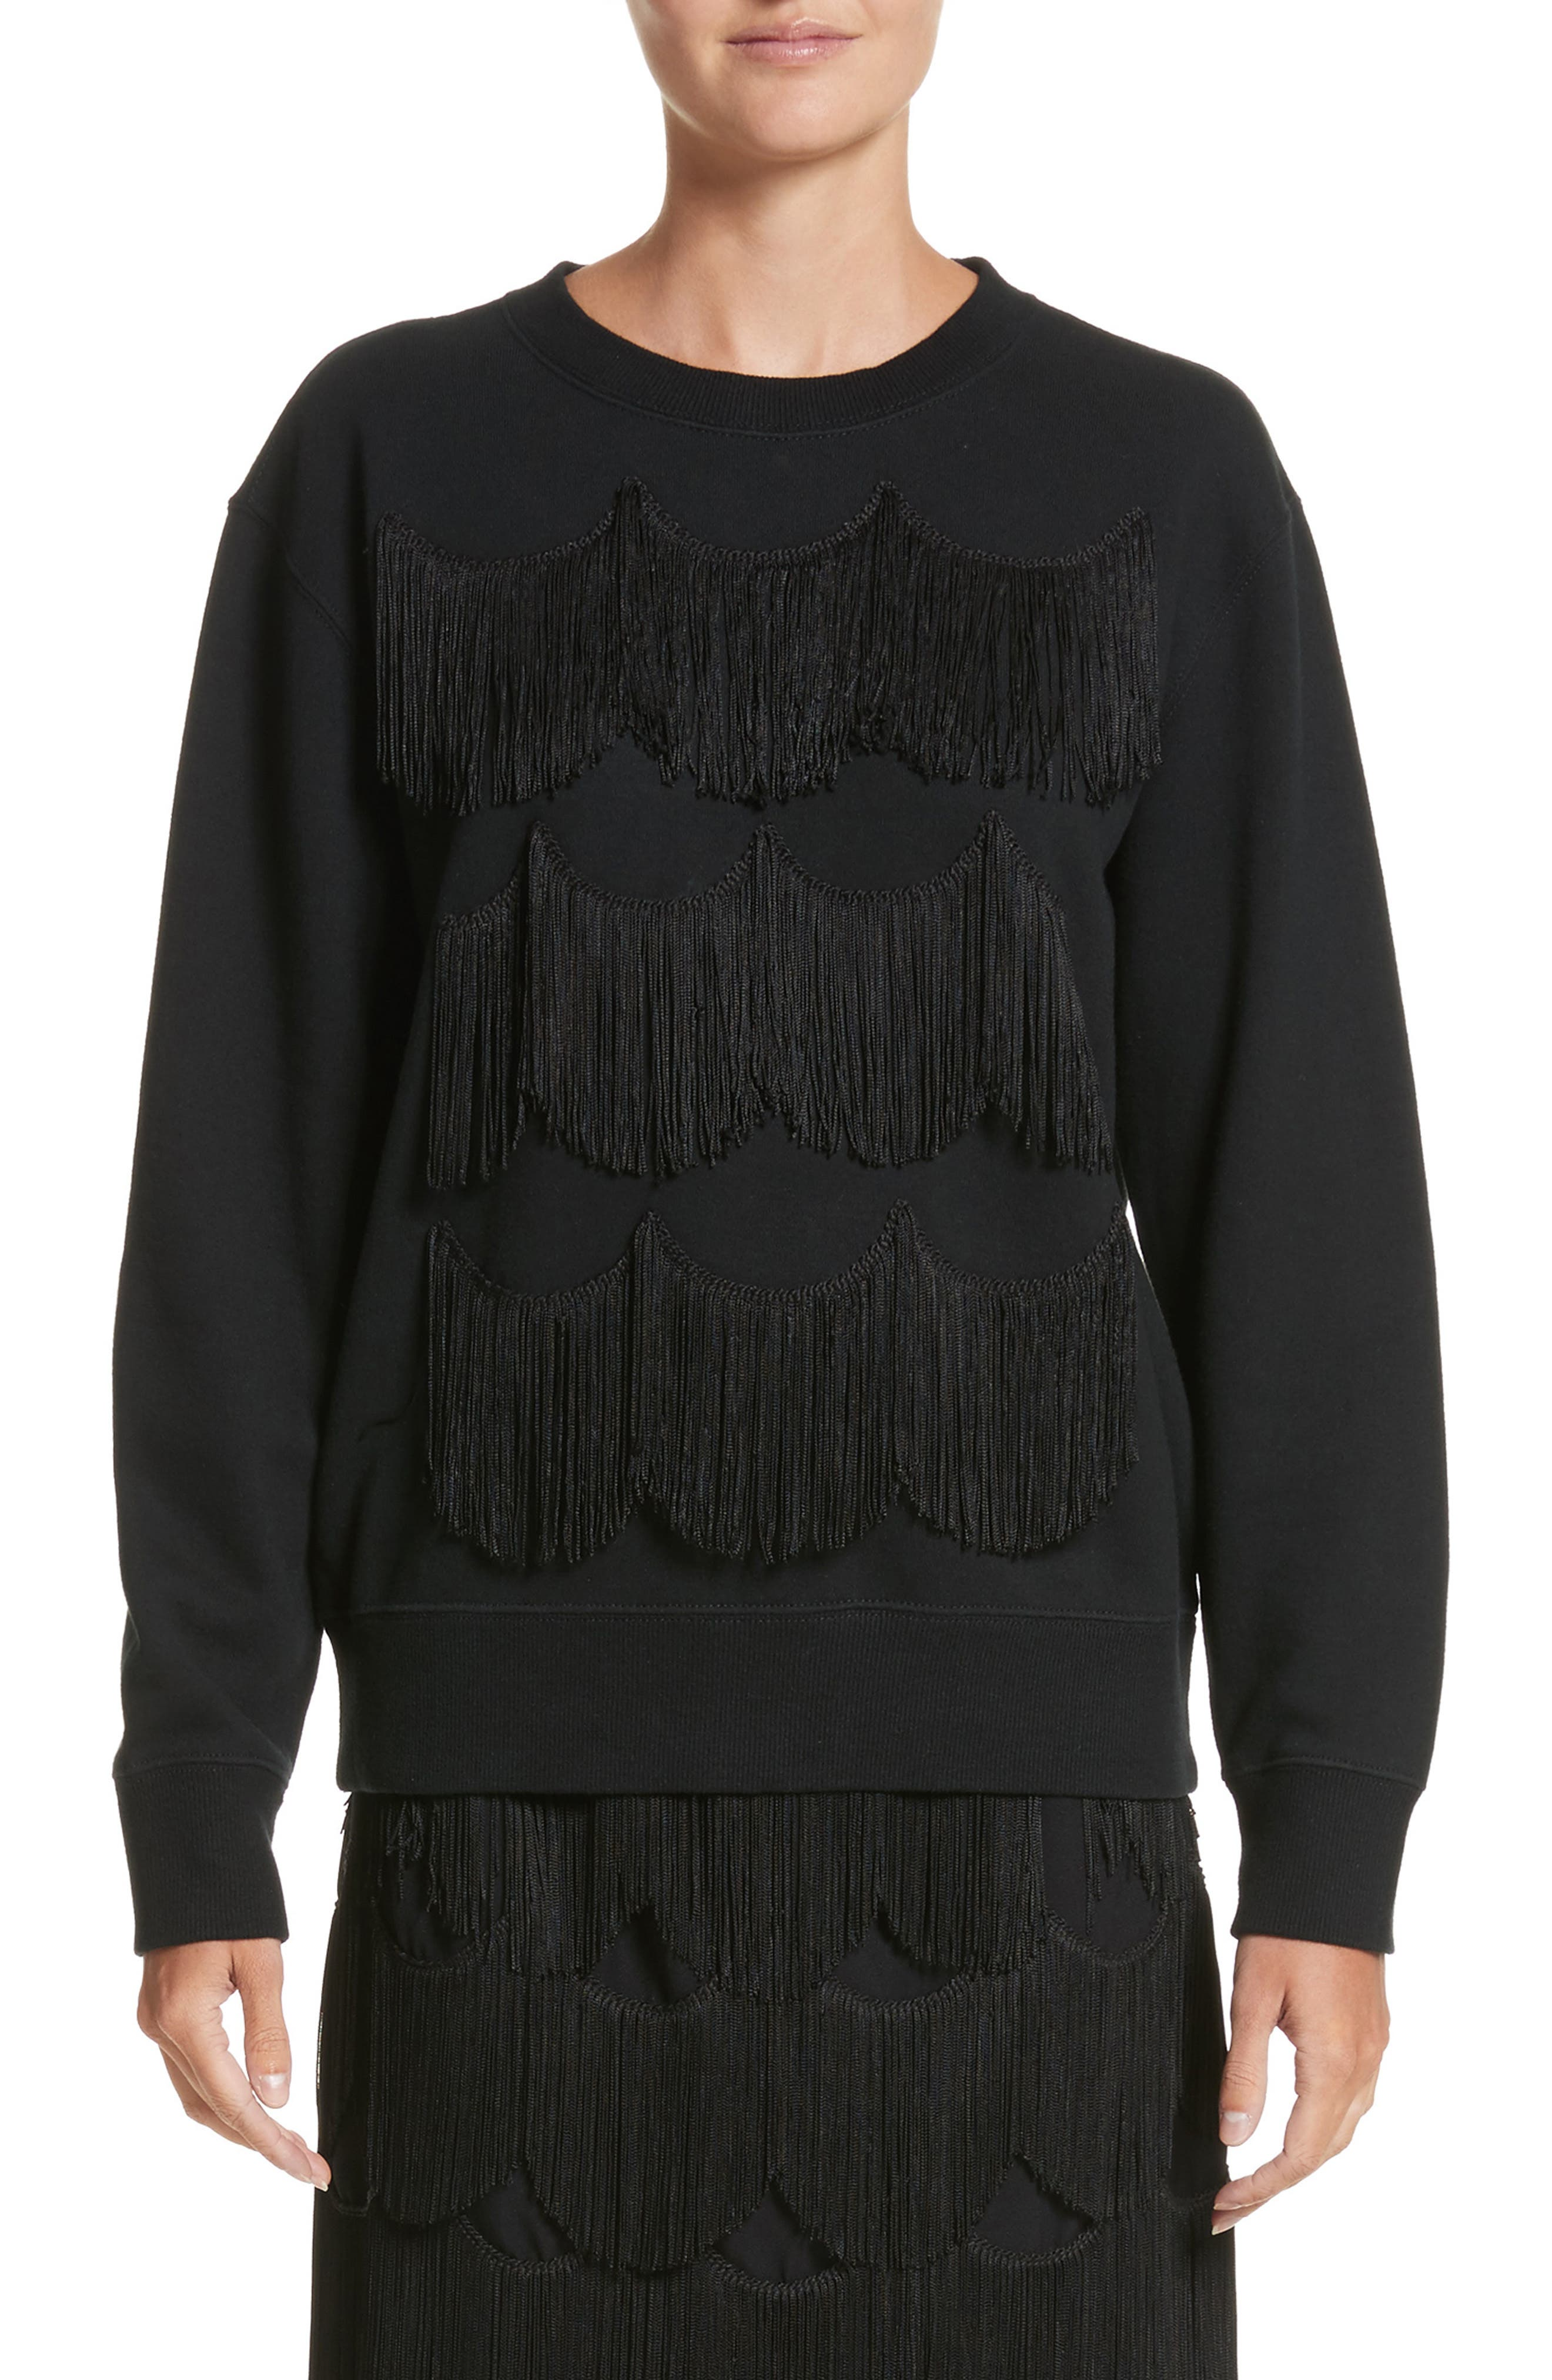 Main Image - MARC JACOBS Fringe Cotton Sweatshirt